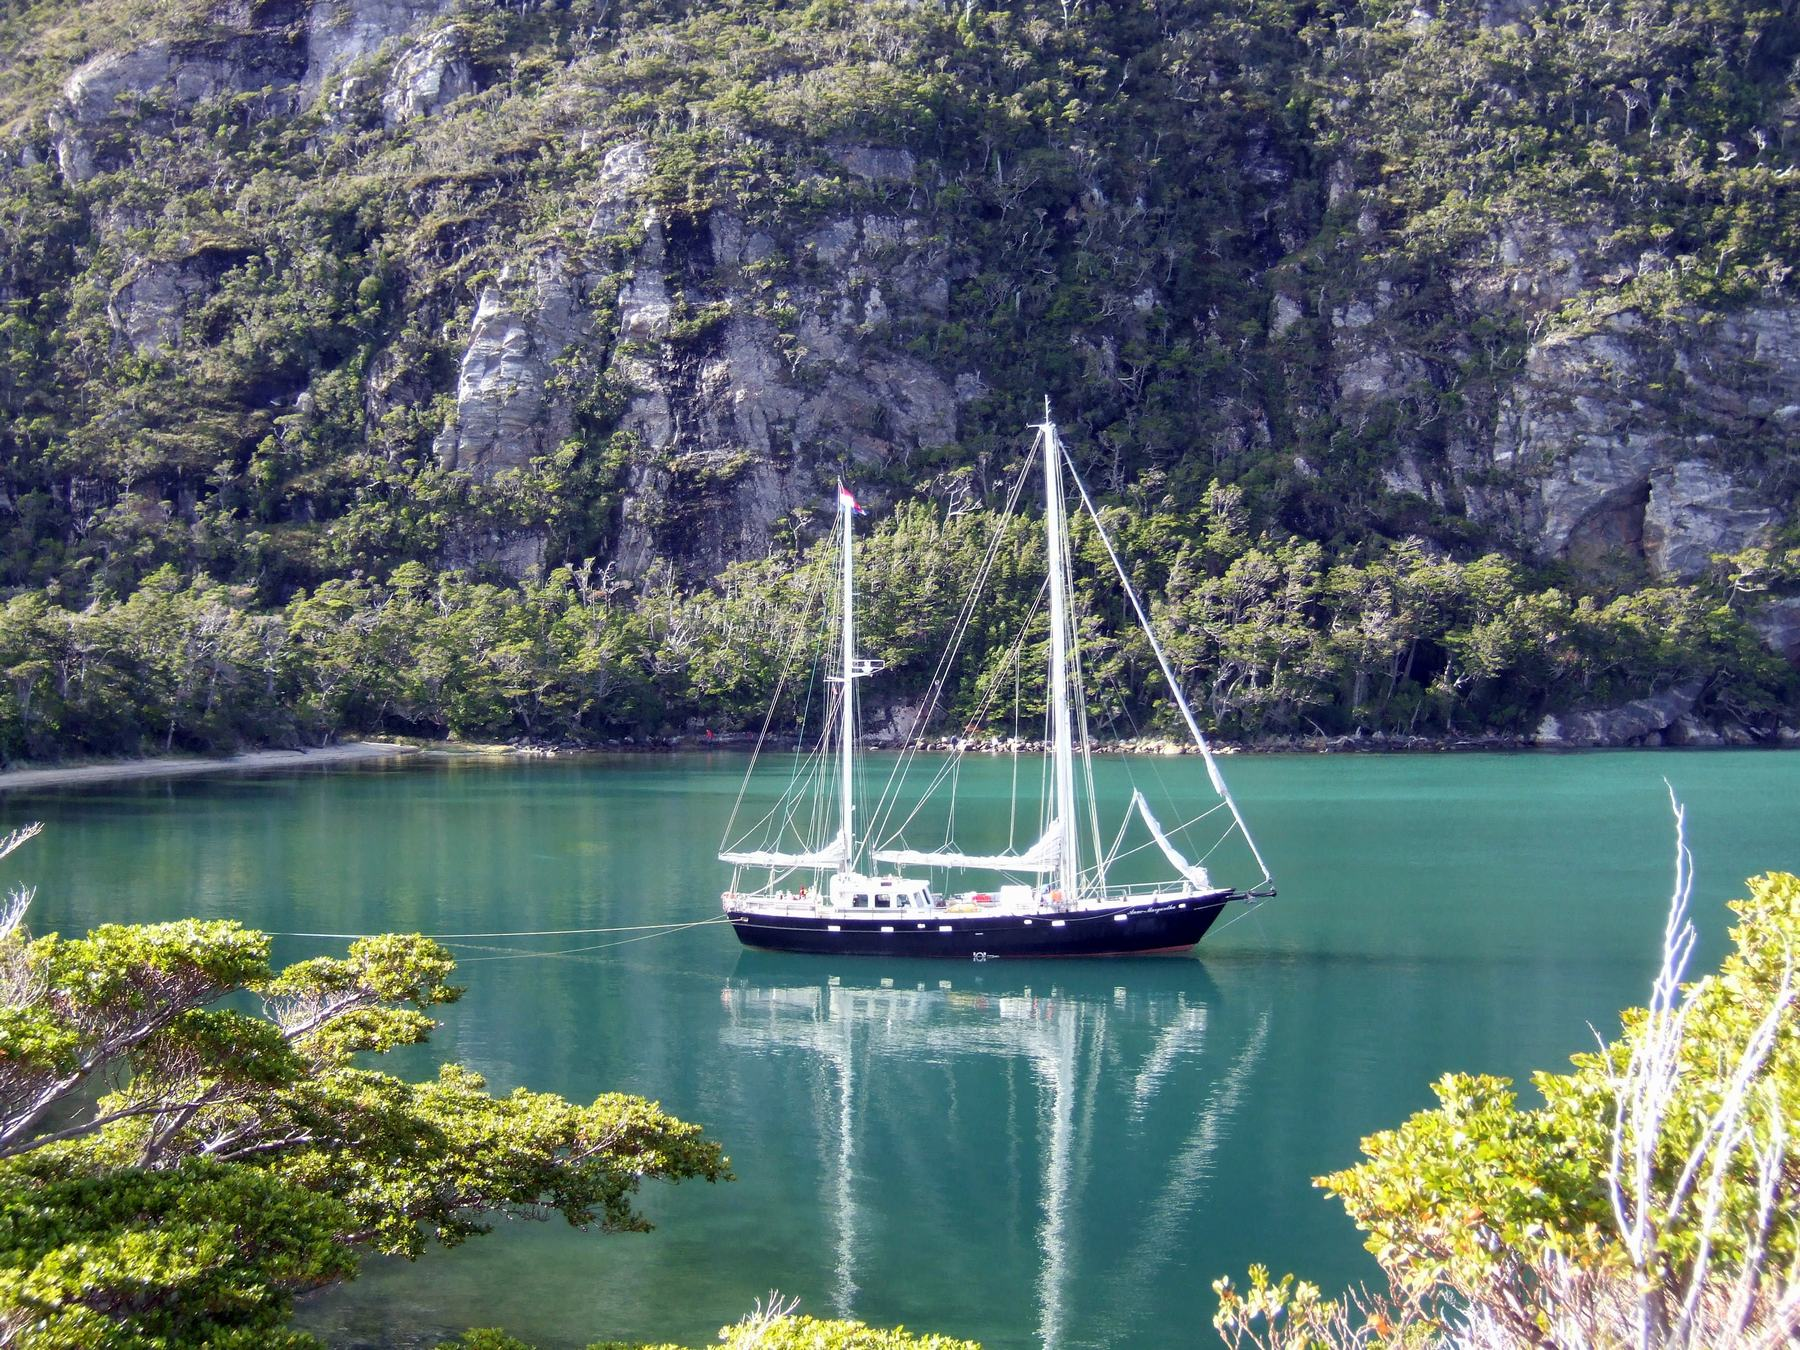 Patagonia sailing expedition with the Anne-Margaretha